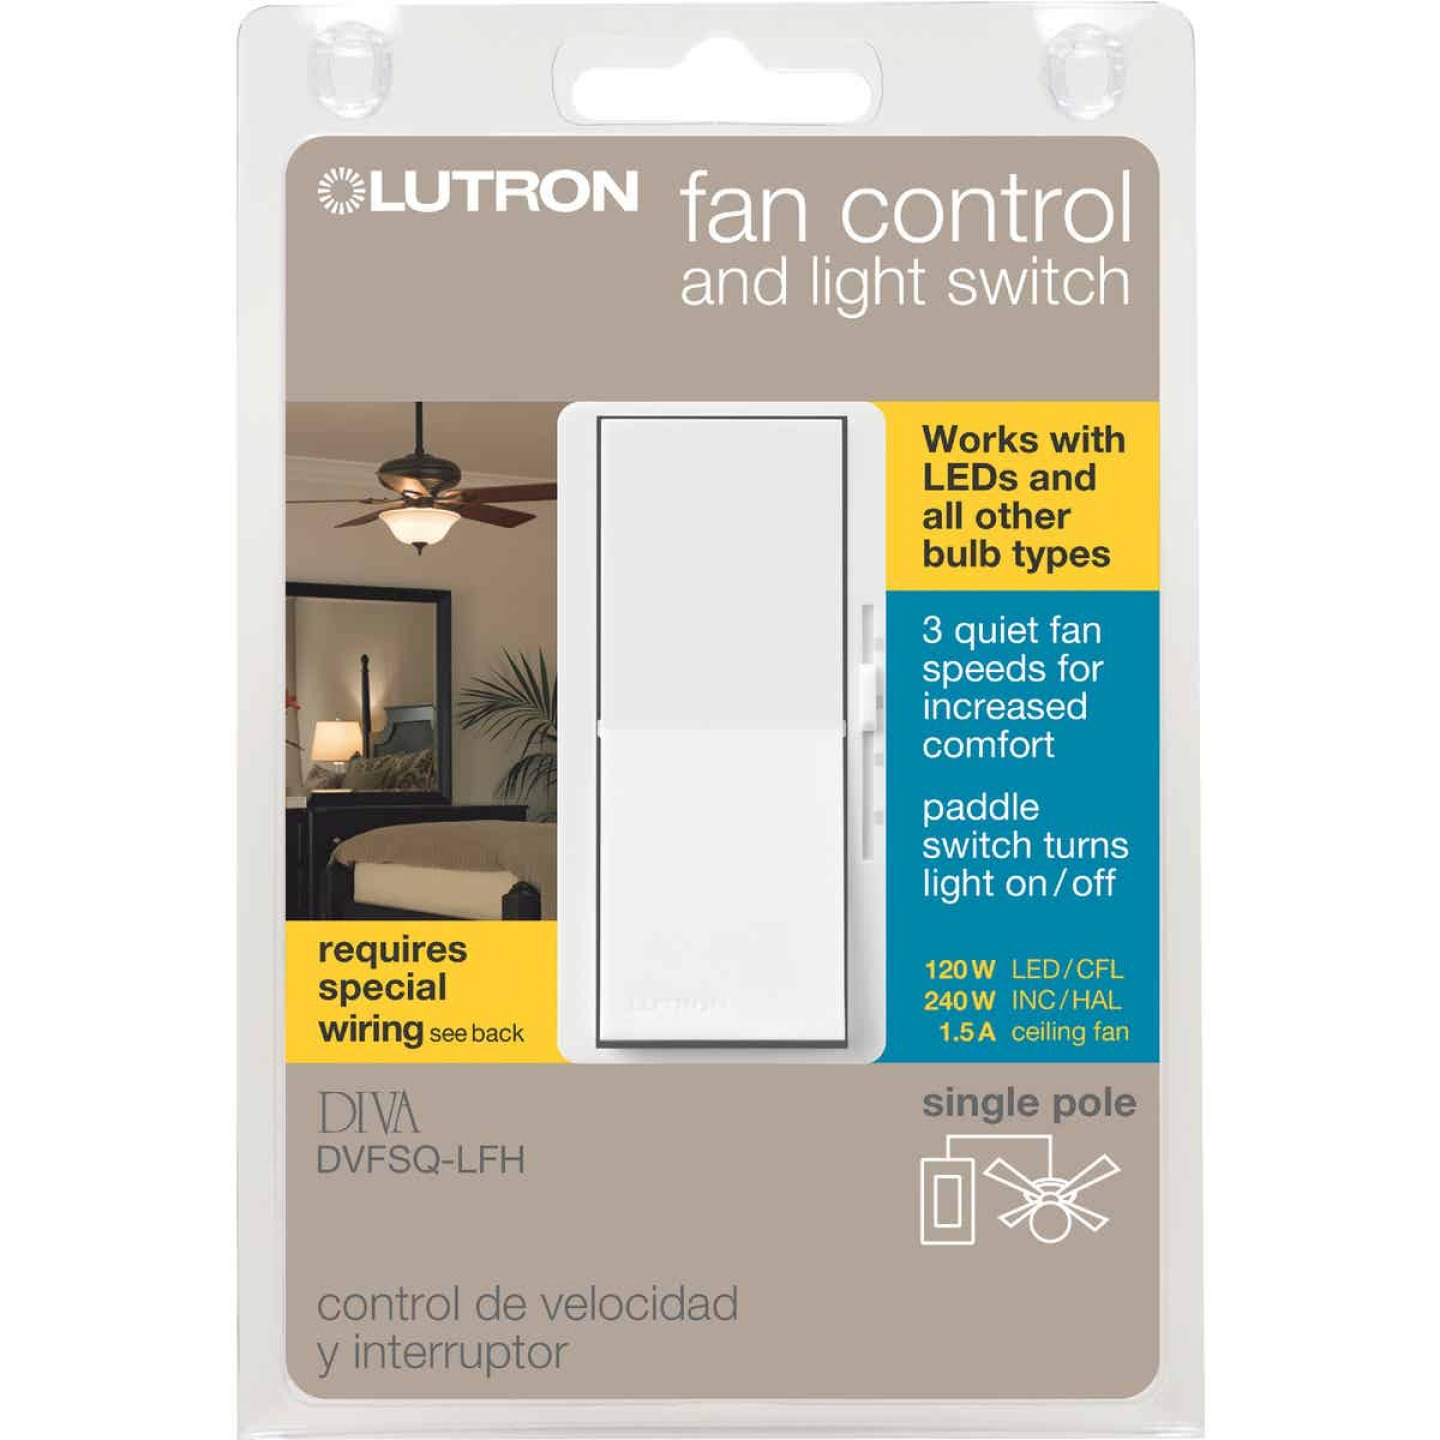 Lutron Diva White Single Pole Rocker 3-Speed Light & Fan Control Switch Image 1